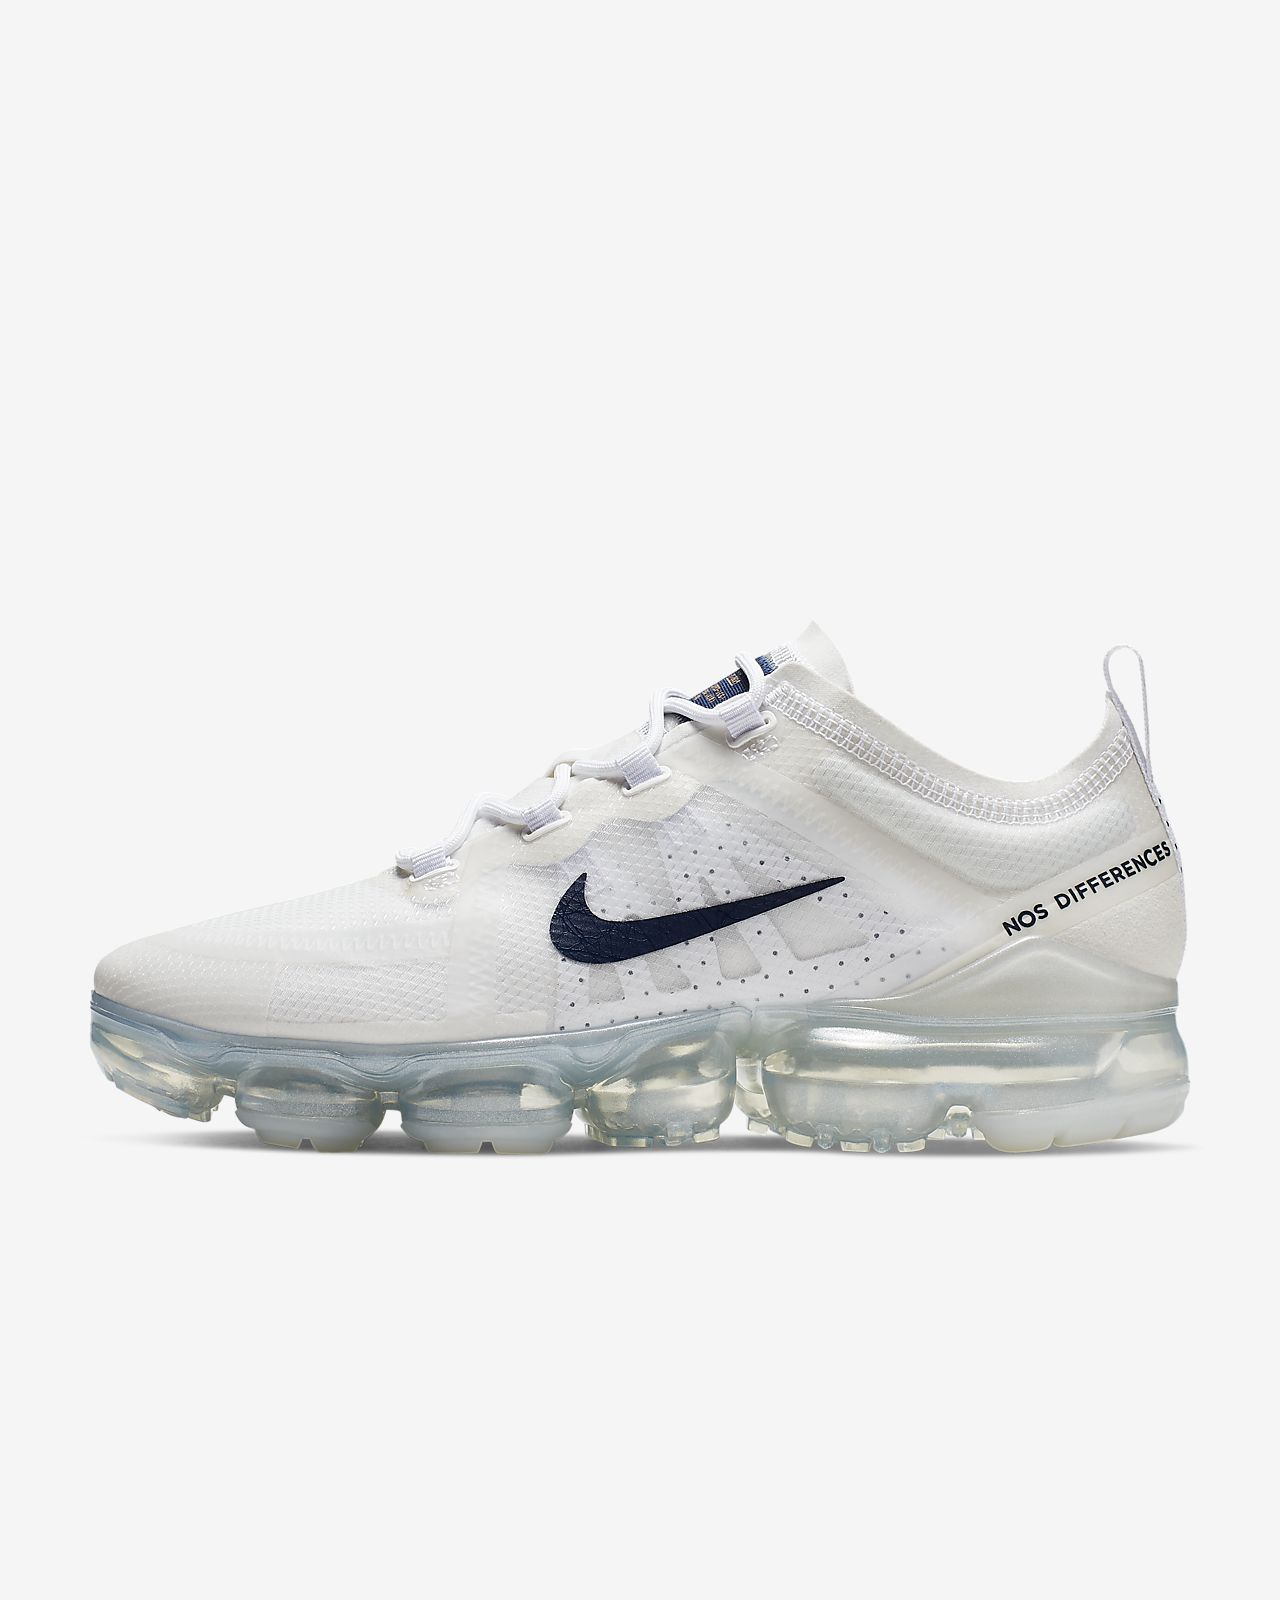 Nike Air VaporMax 2019 Unité Totale Women's Shoe